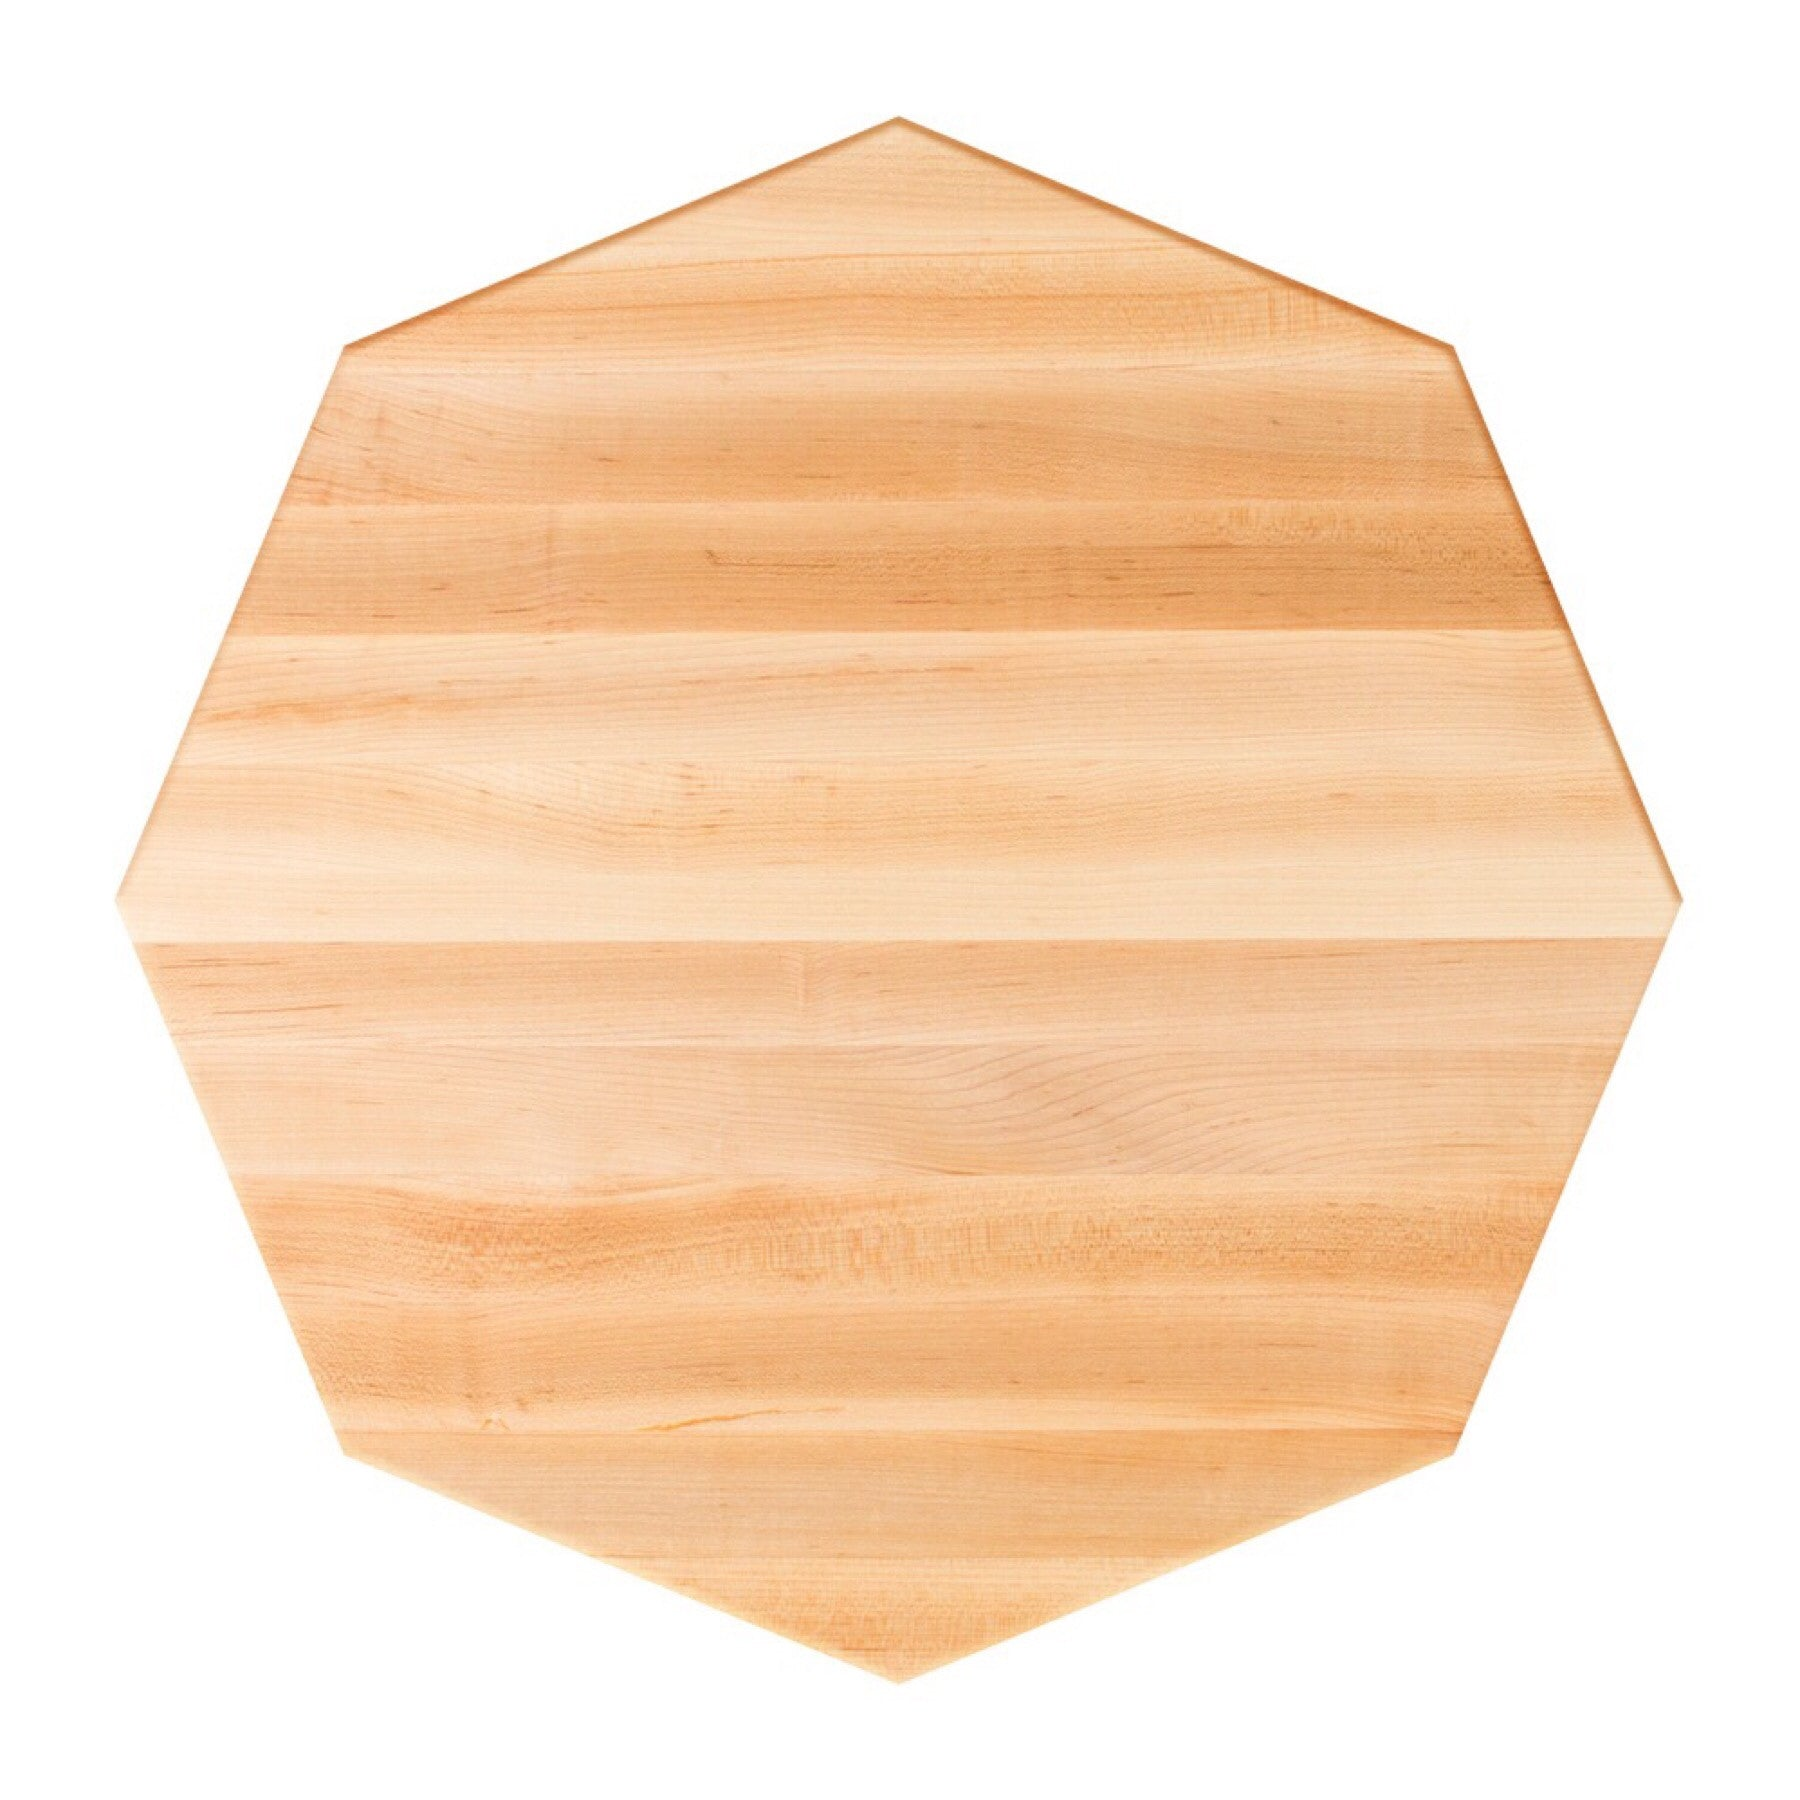 John Boos Octagonal RTM Maple Butcher Block Table Top